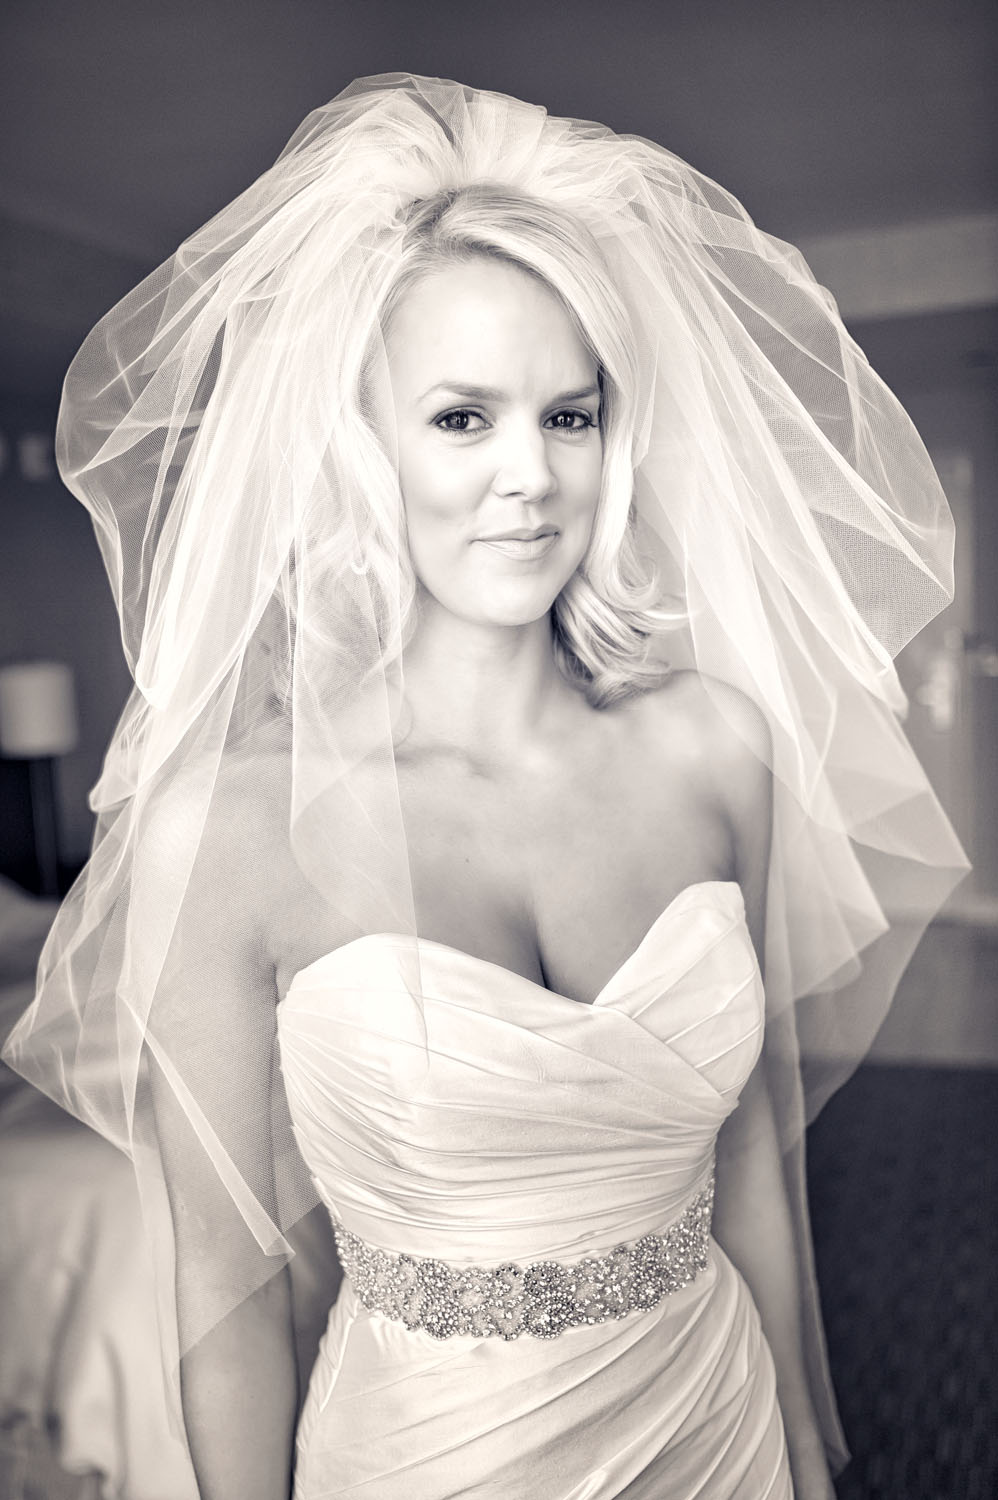 portrait of a bride wedding day-1.jpg